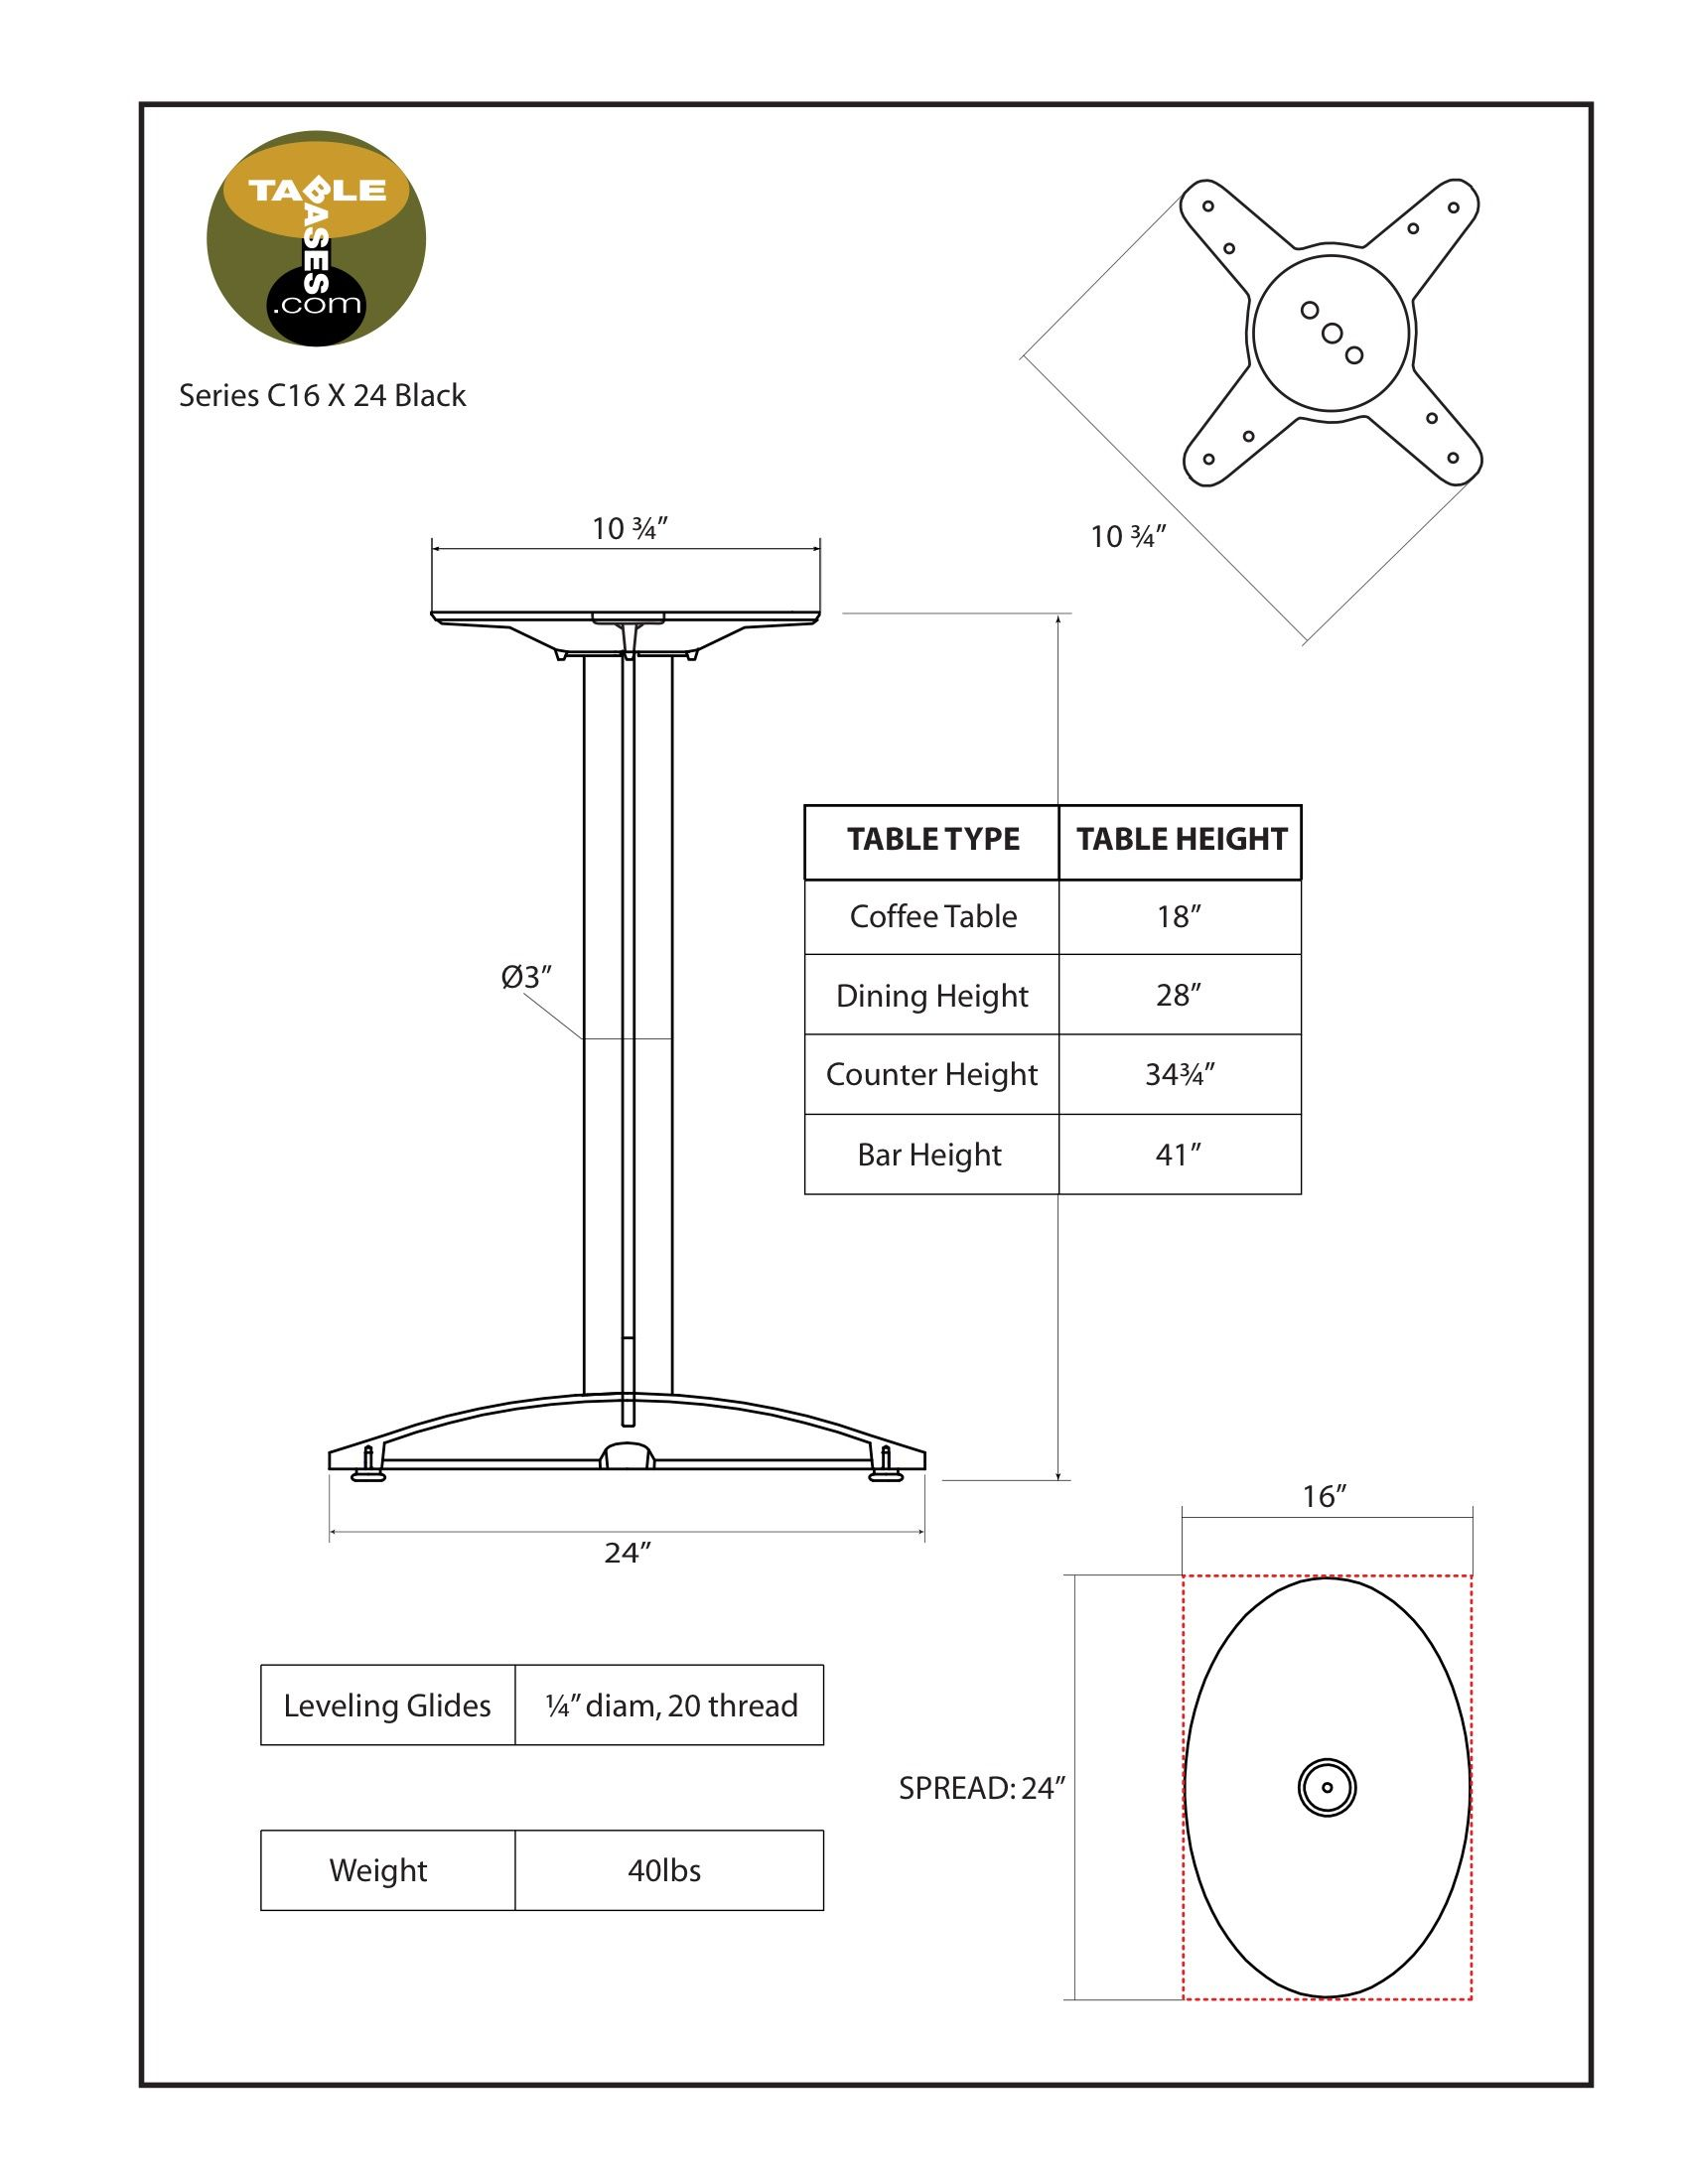 C16x24 Black Table Base - Specifications